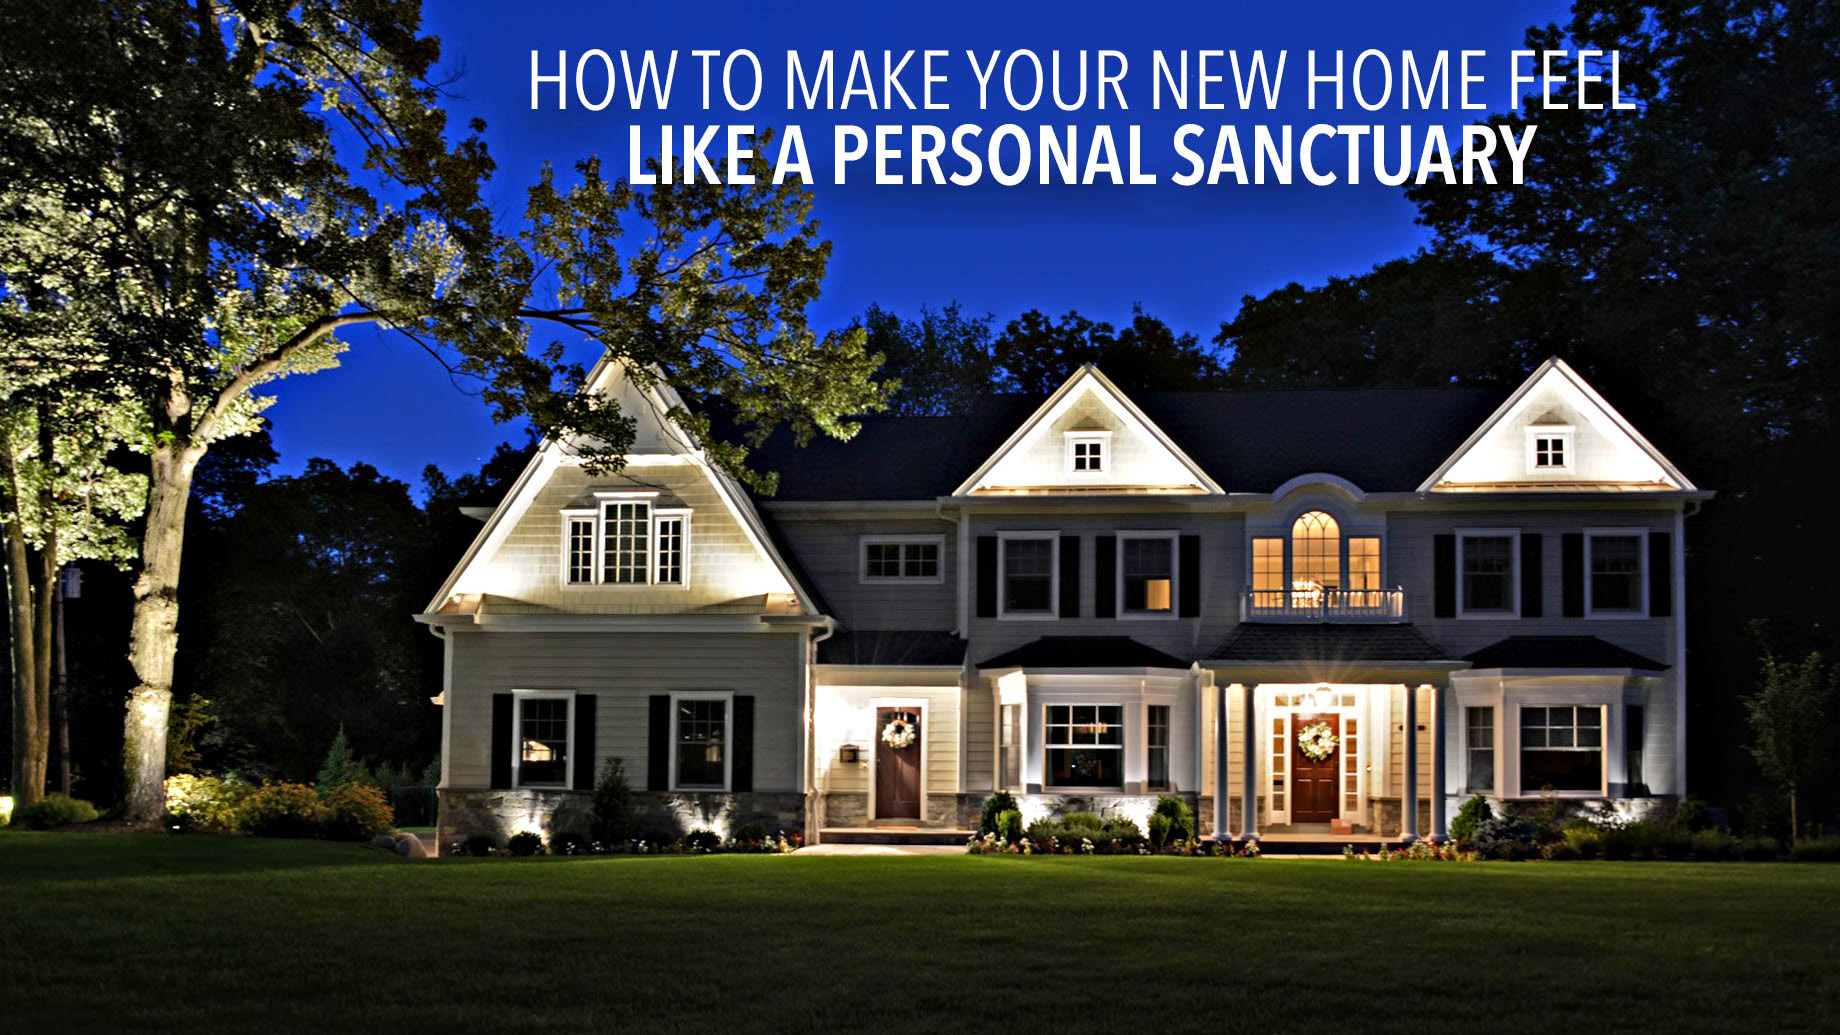 How to Make Your New Home Feel Like a Personal Sanctuary